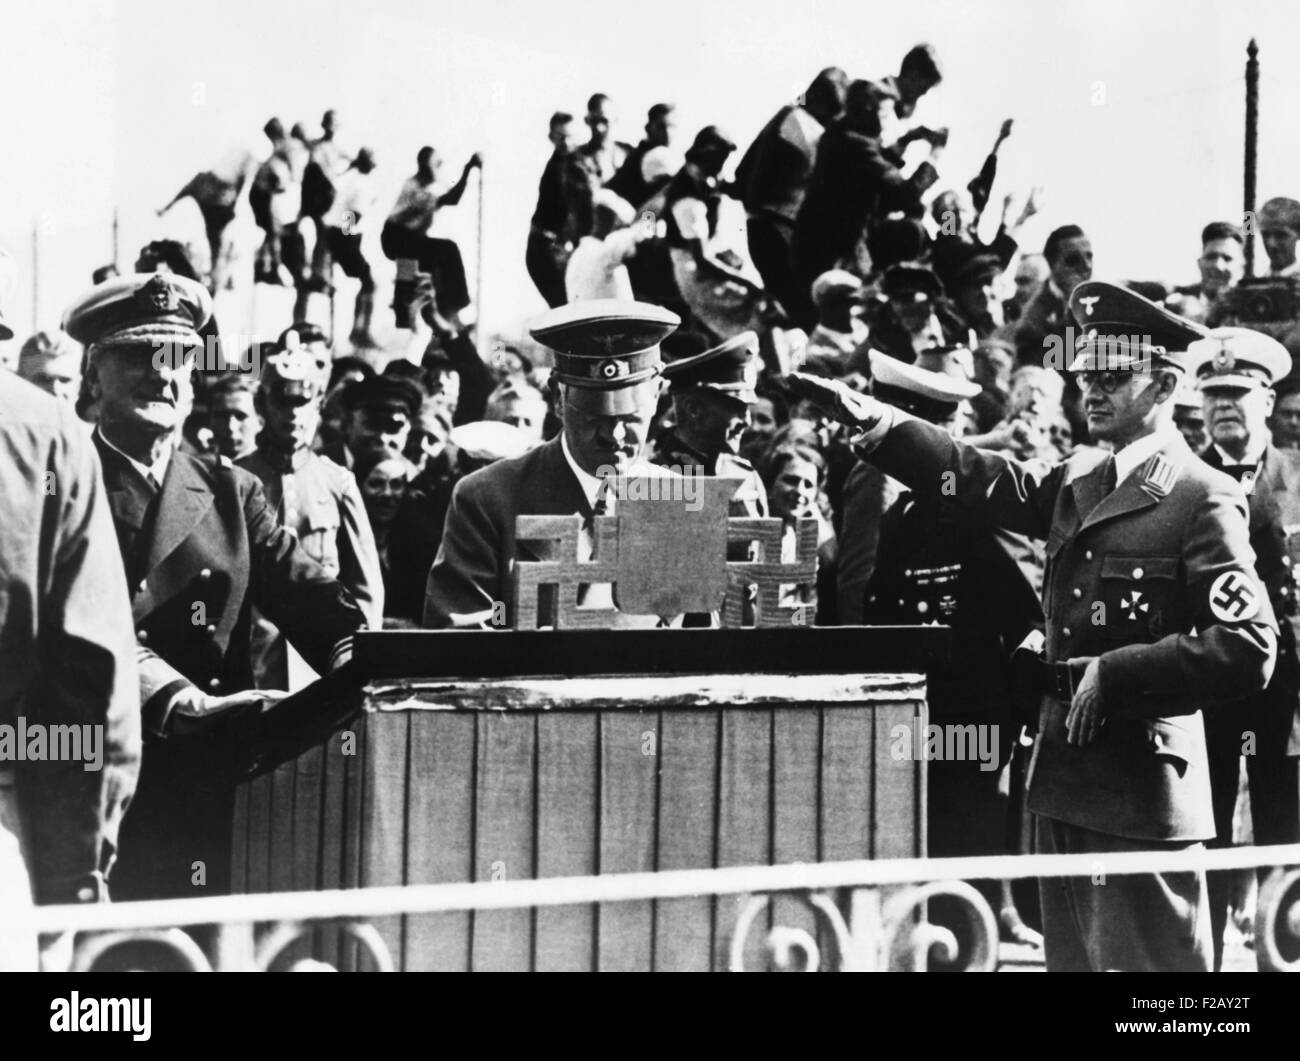 Hitler and Hungarian Regent Horthy at Heligoland Island in the North Sea, Sept. 1, 1938. Adolf Hitler signed the - Stock Image